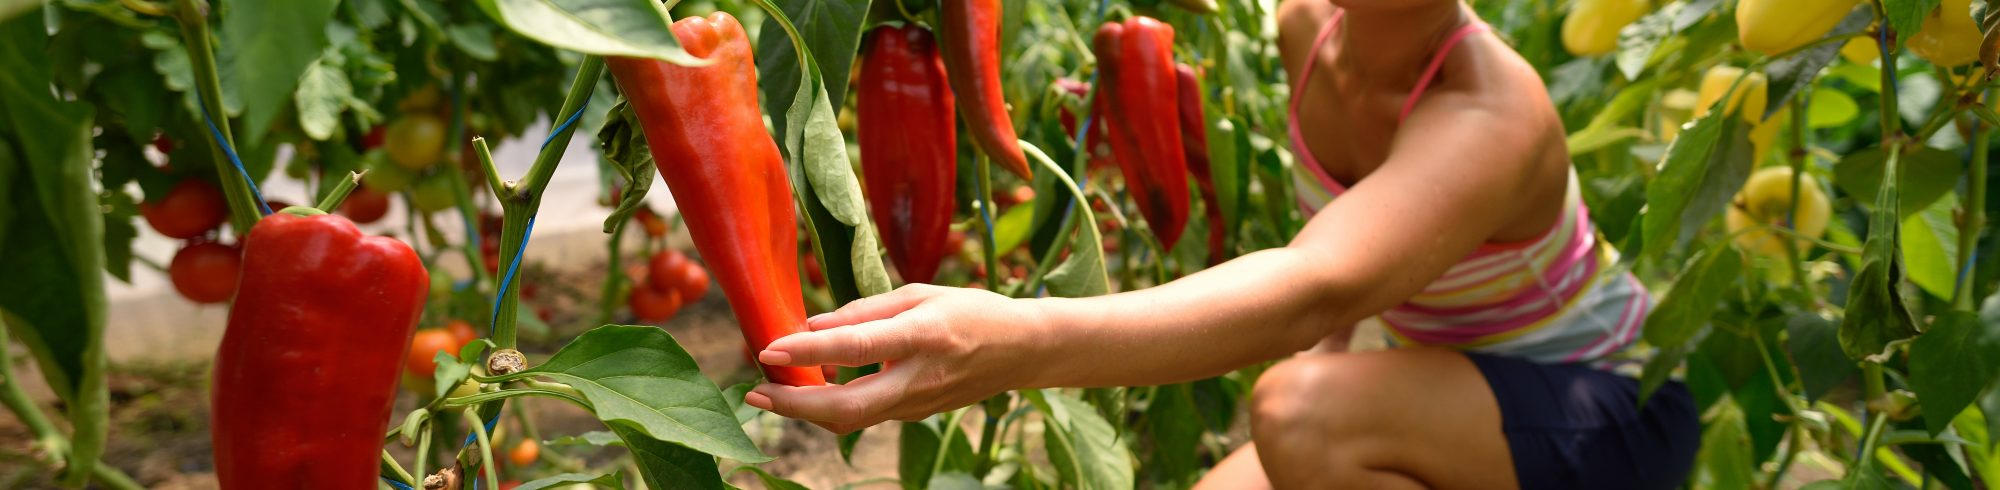 girl picking peppers in a garden